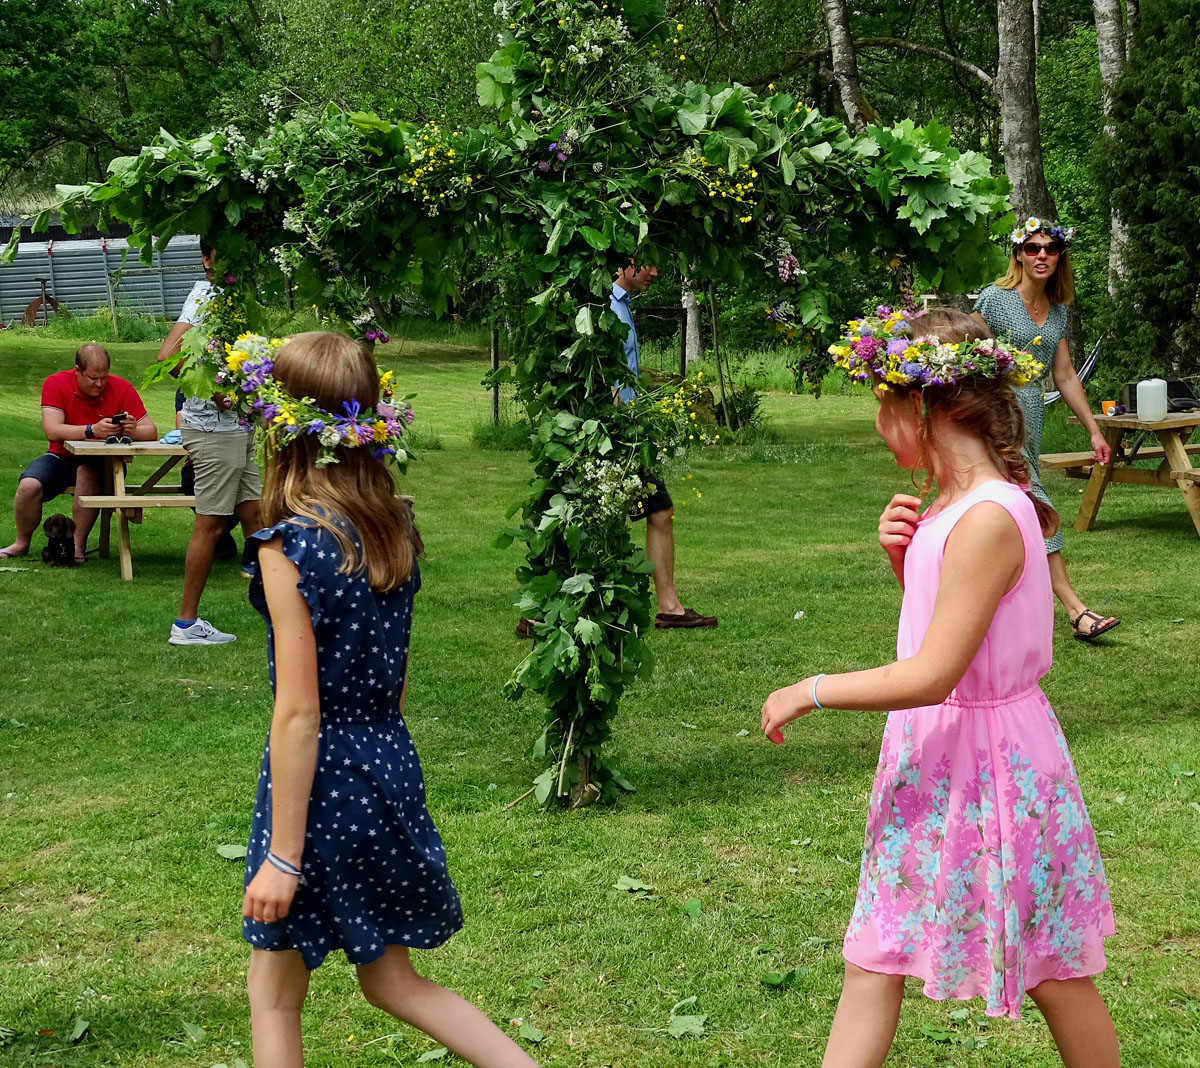 Typical Swedish Midsummer Celebration This year's dancing was with Social Distance